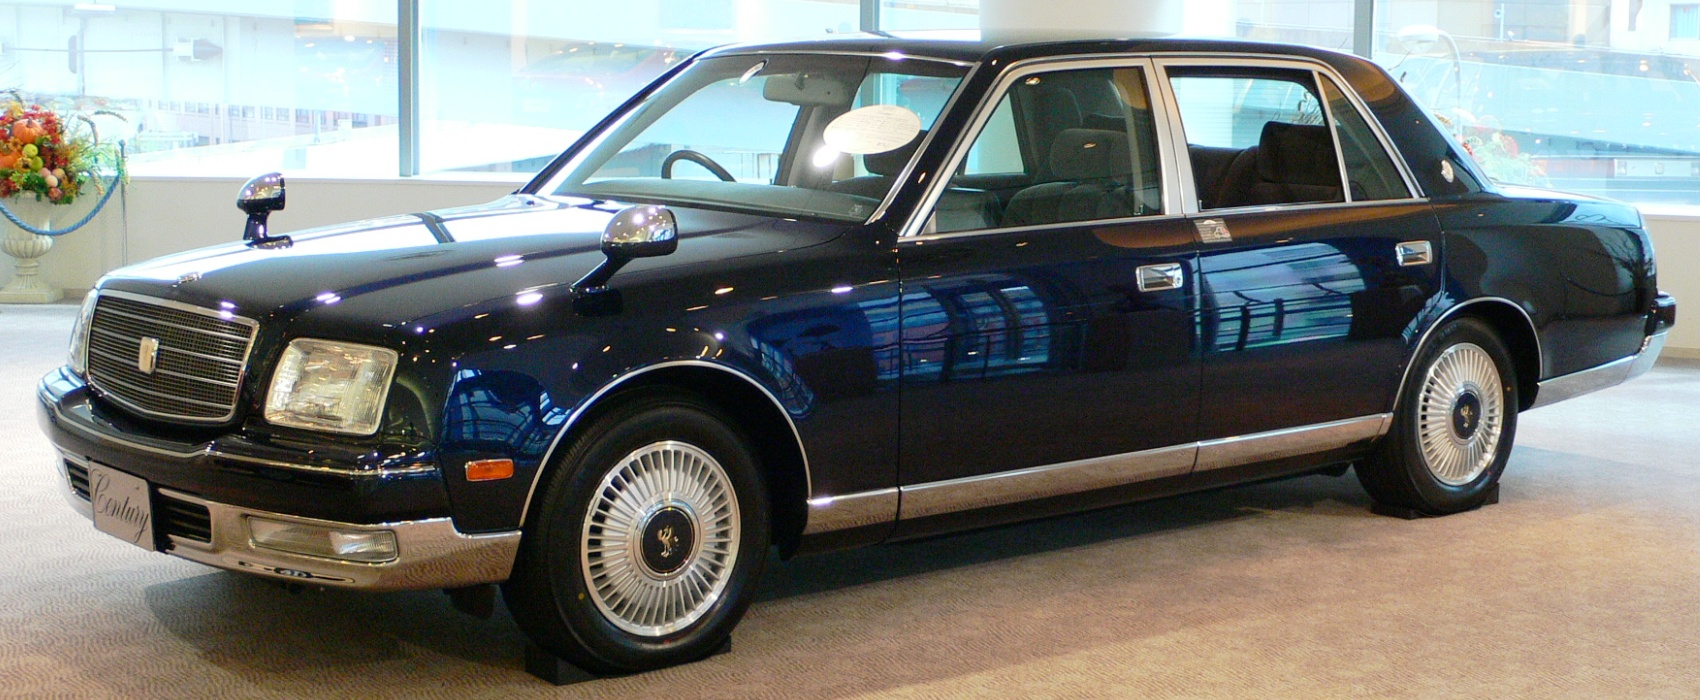 Toyota century photo - 3